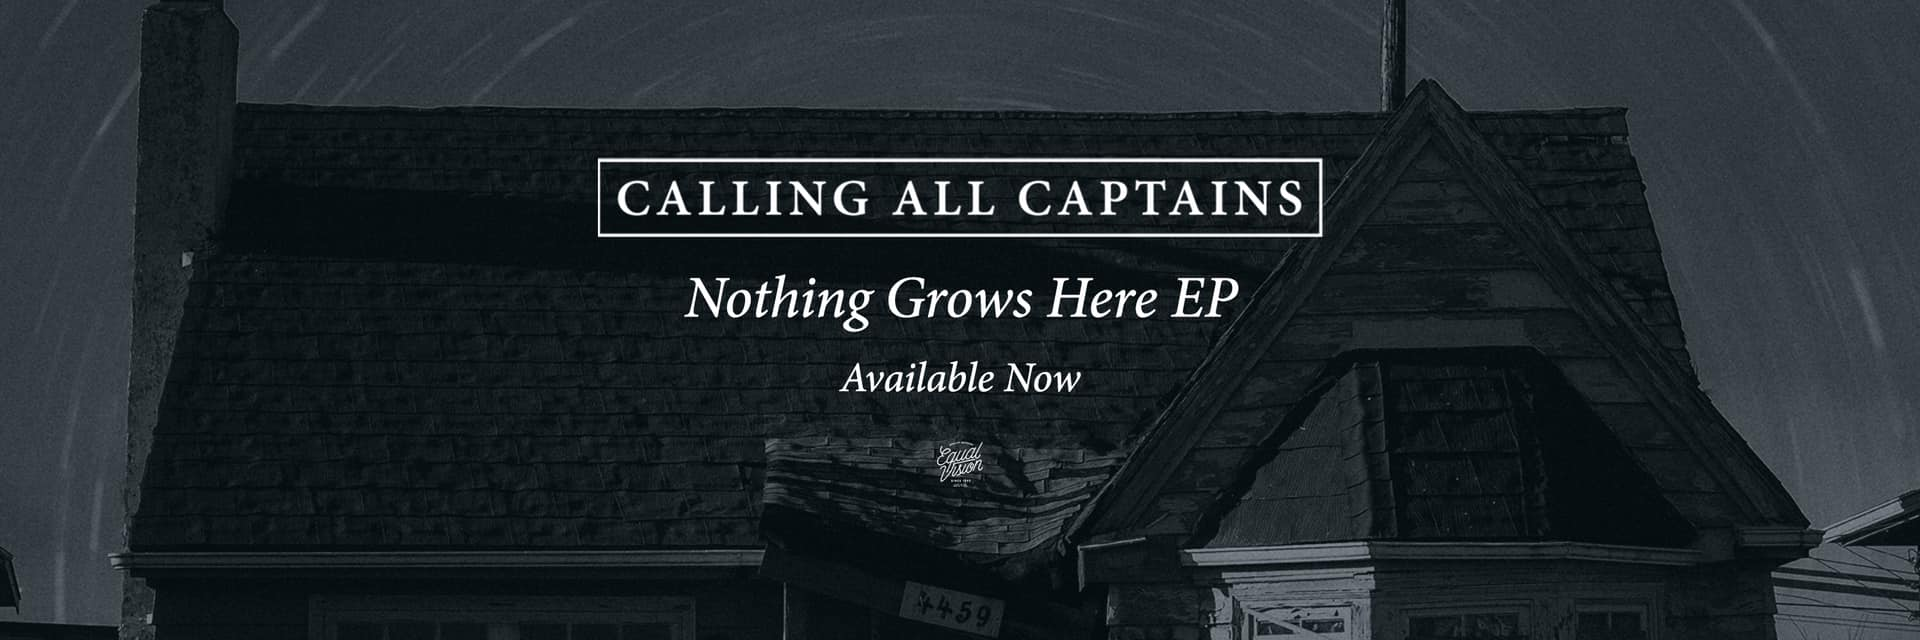 Calling All Captains, Alone I Walk, Unfazed // EARLY Show!  - Image 1